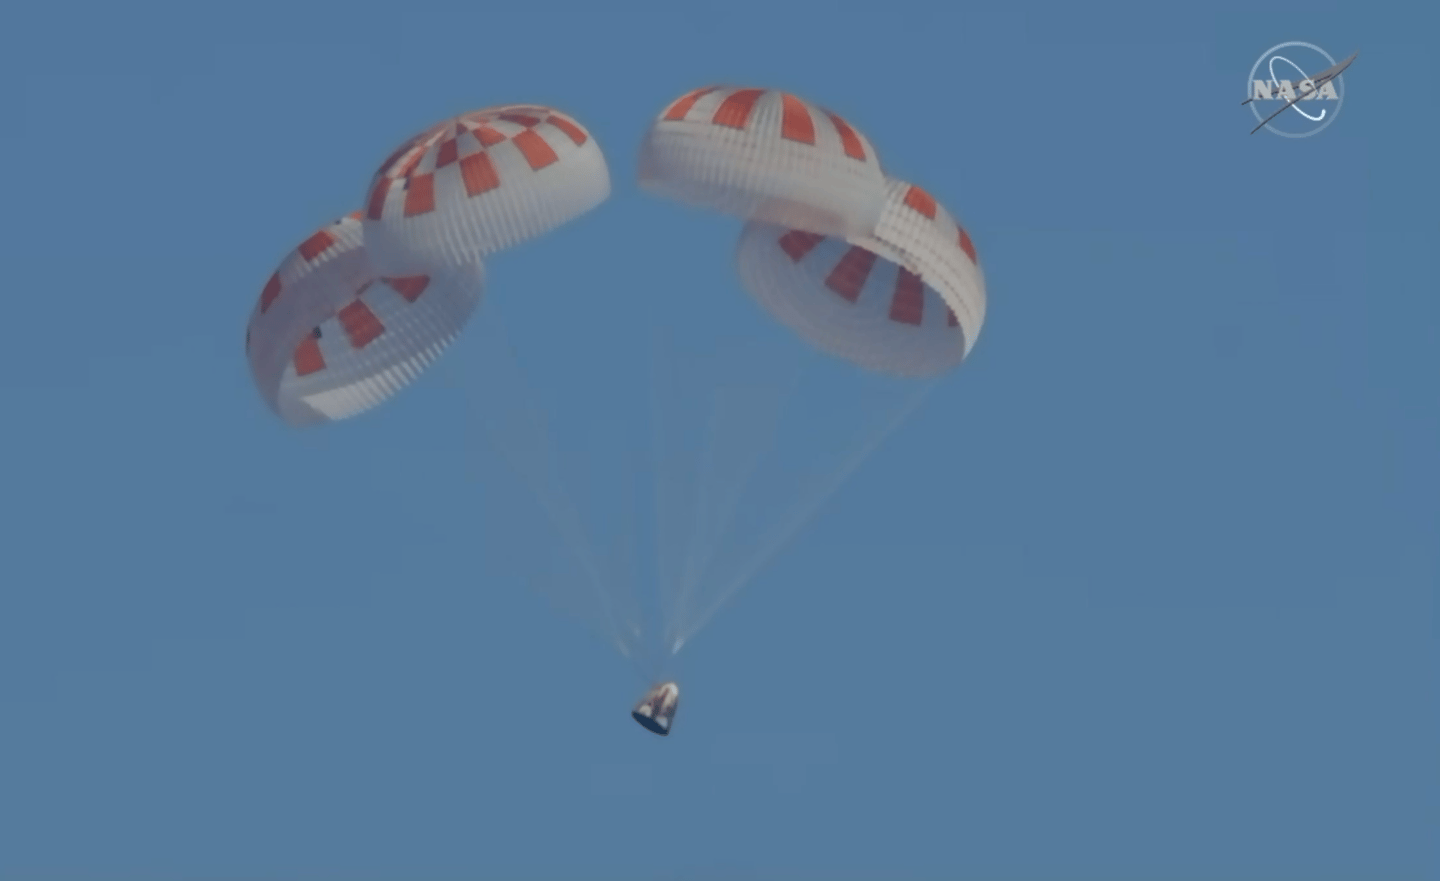 Demo-1 deploying parachutes